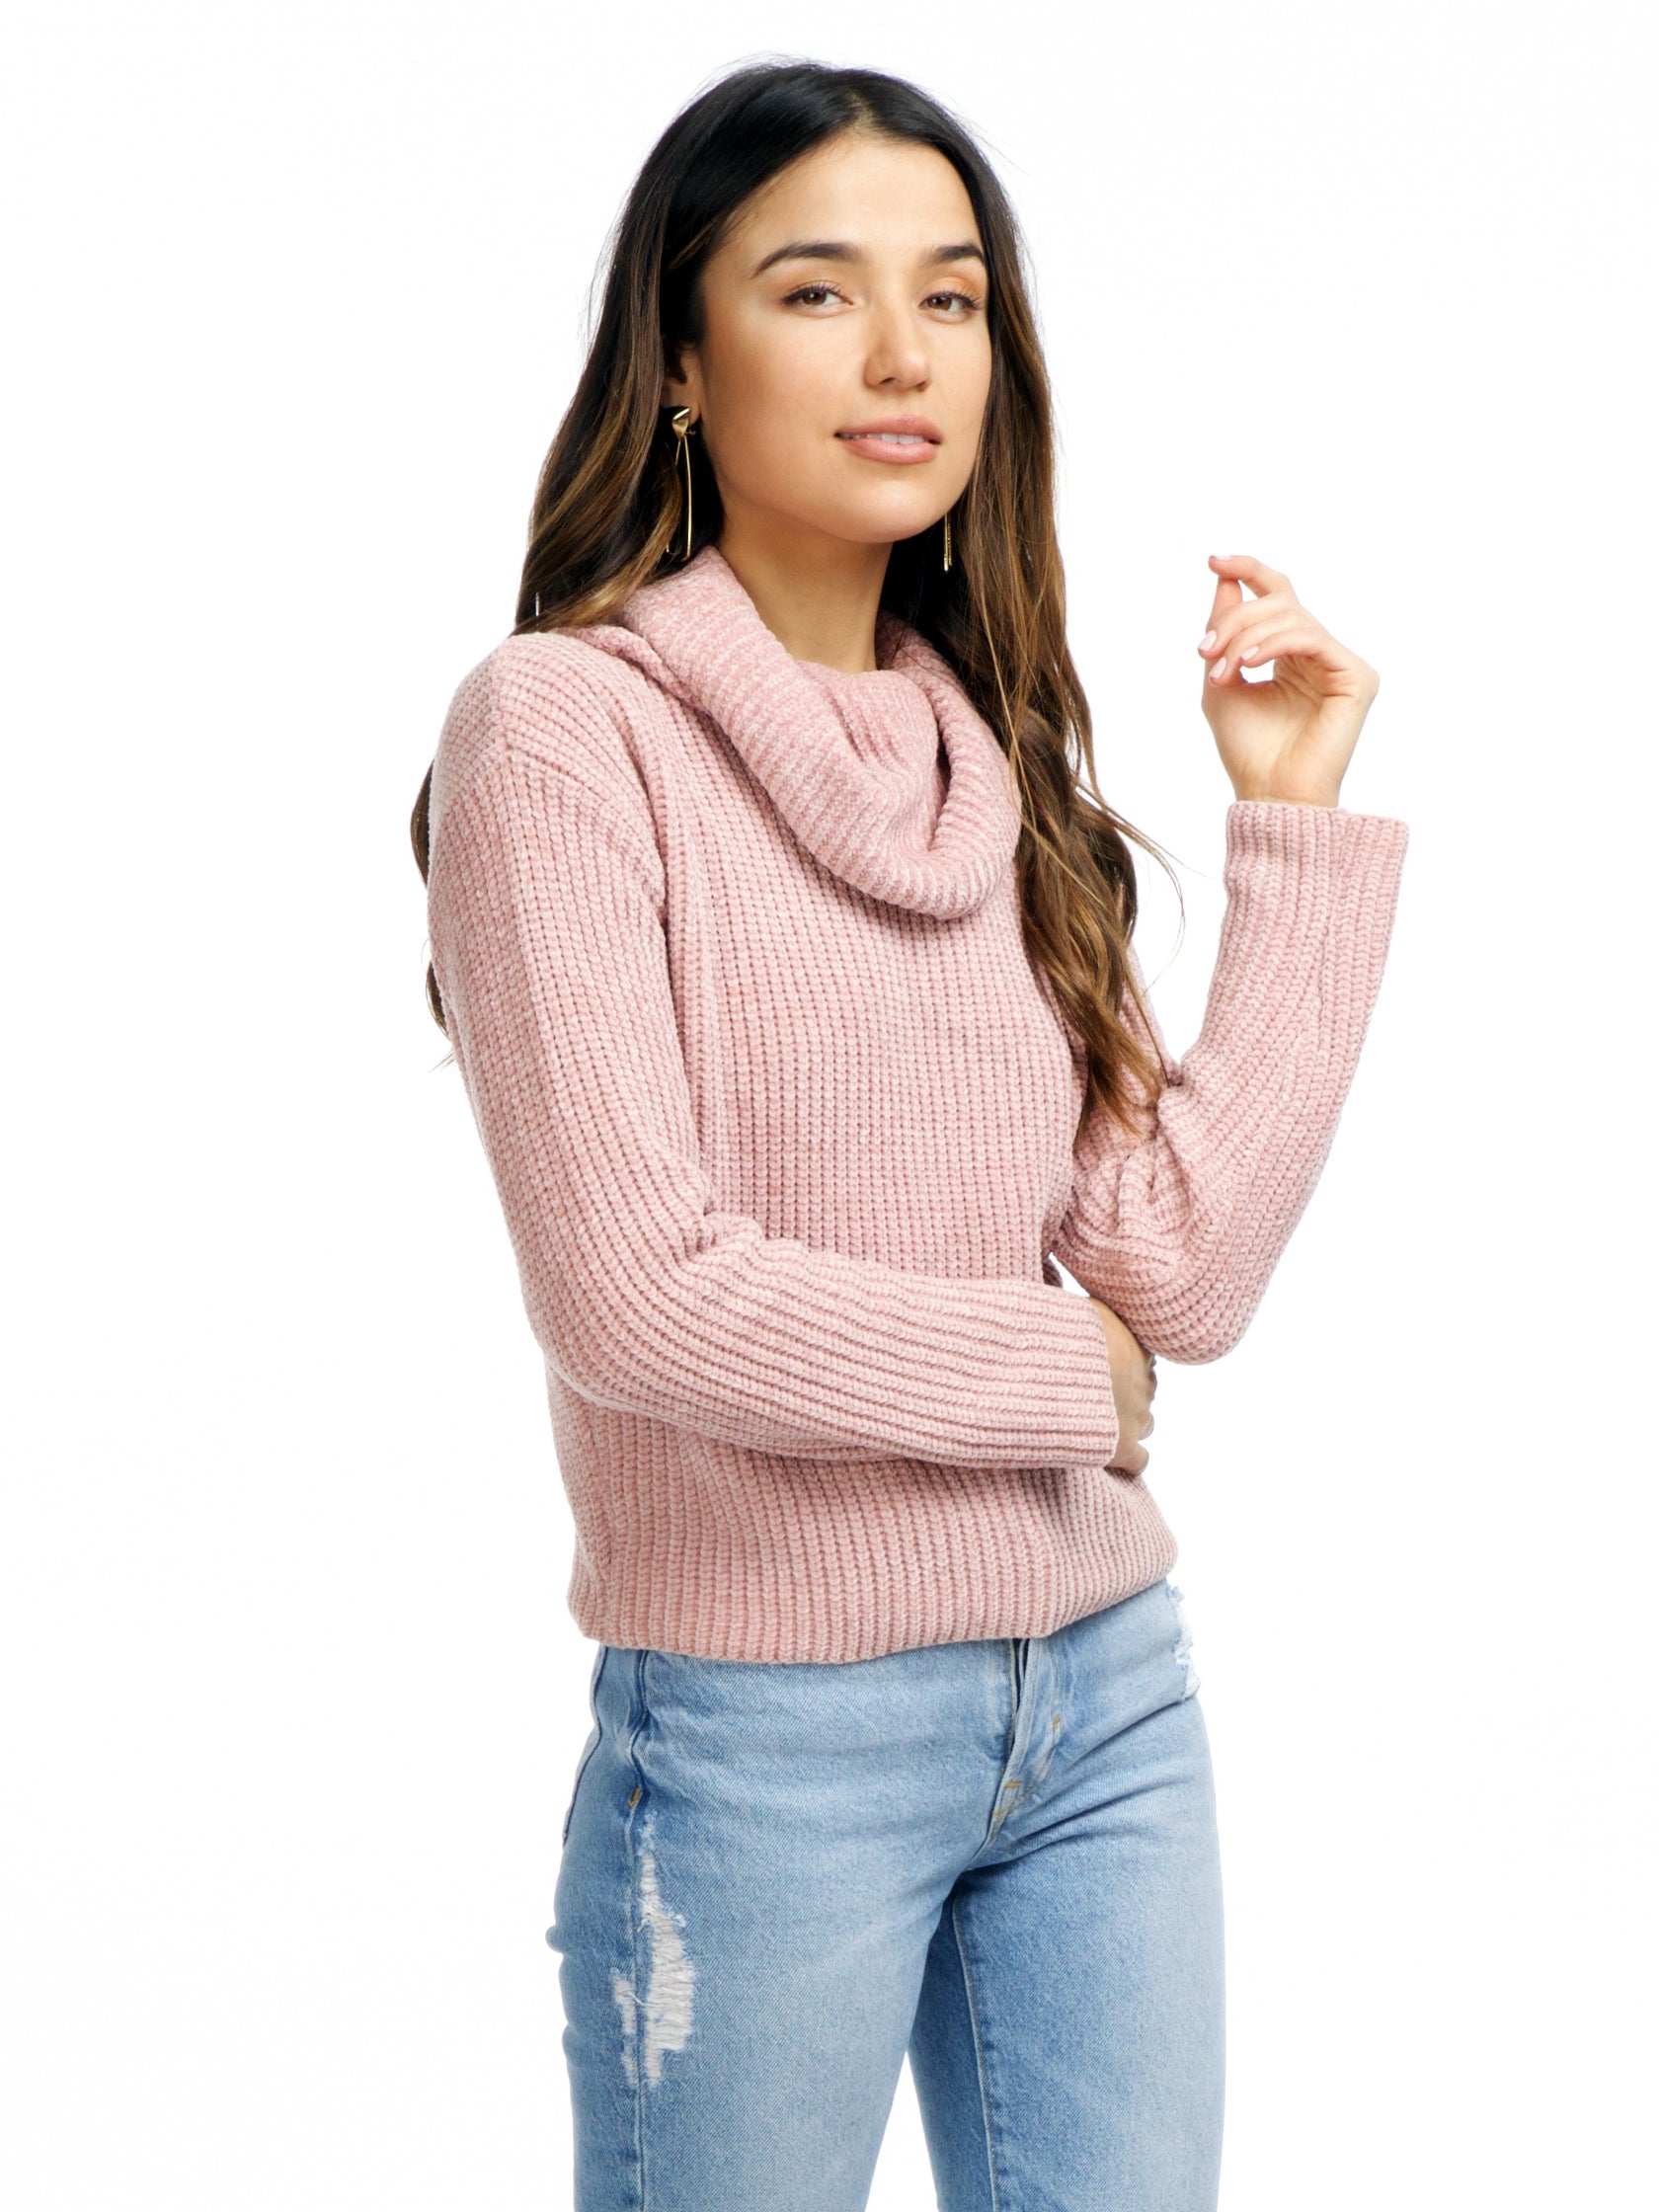 Woman wearing a sweater rental from FashionPass called Make Me Blush Sweater